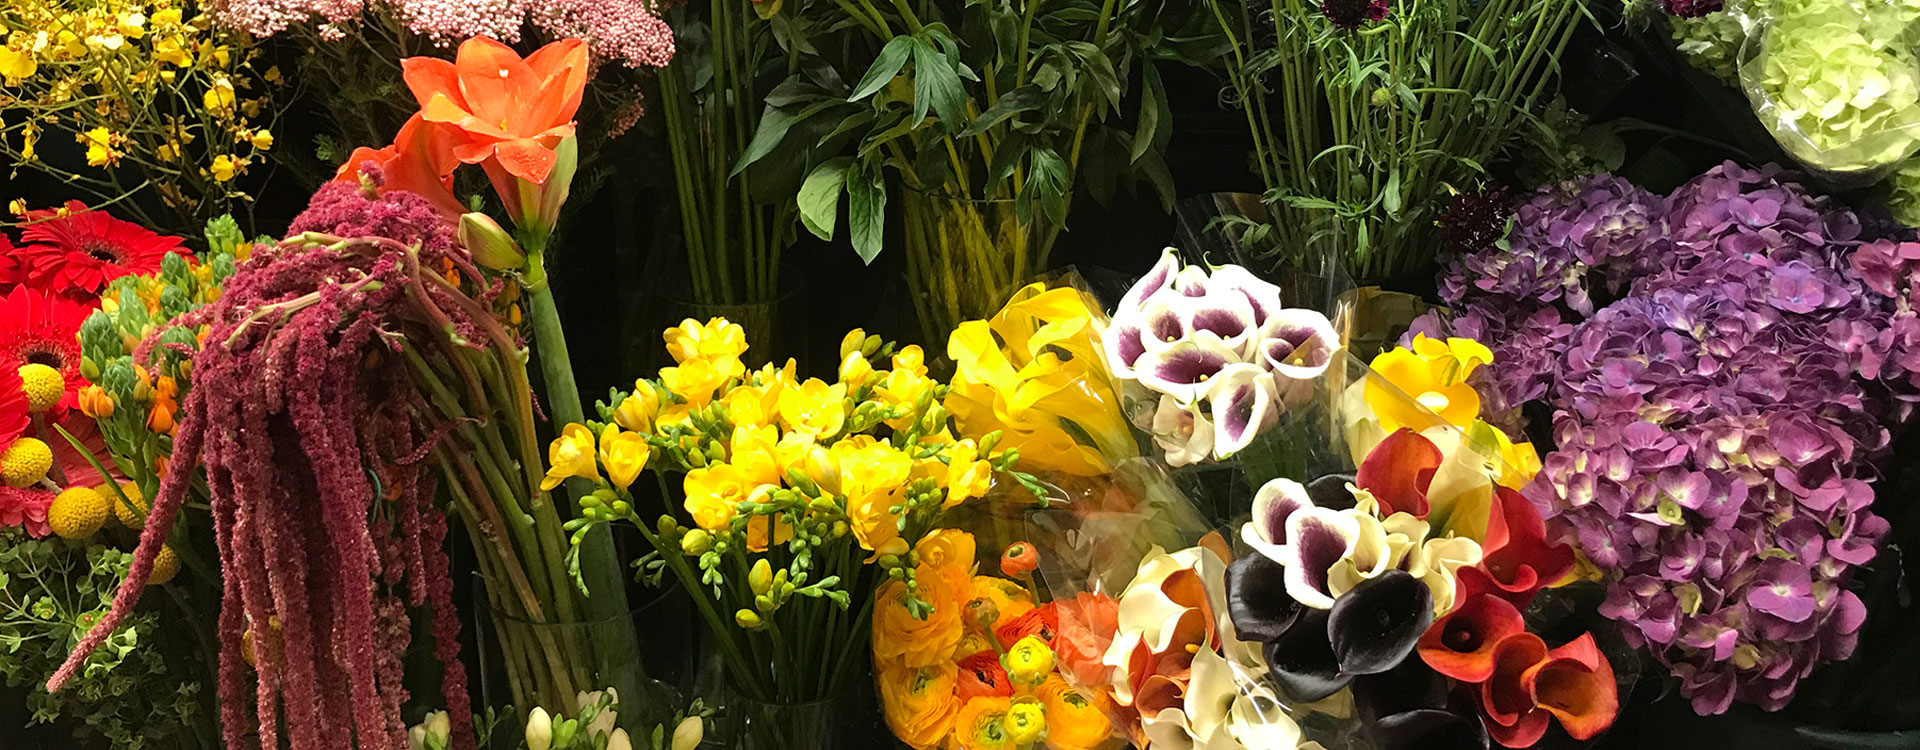 Blooming Couture Flowers Header Blooming Couture Flowers New York